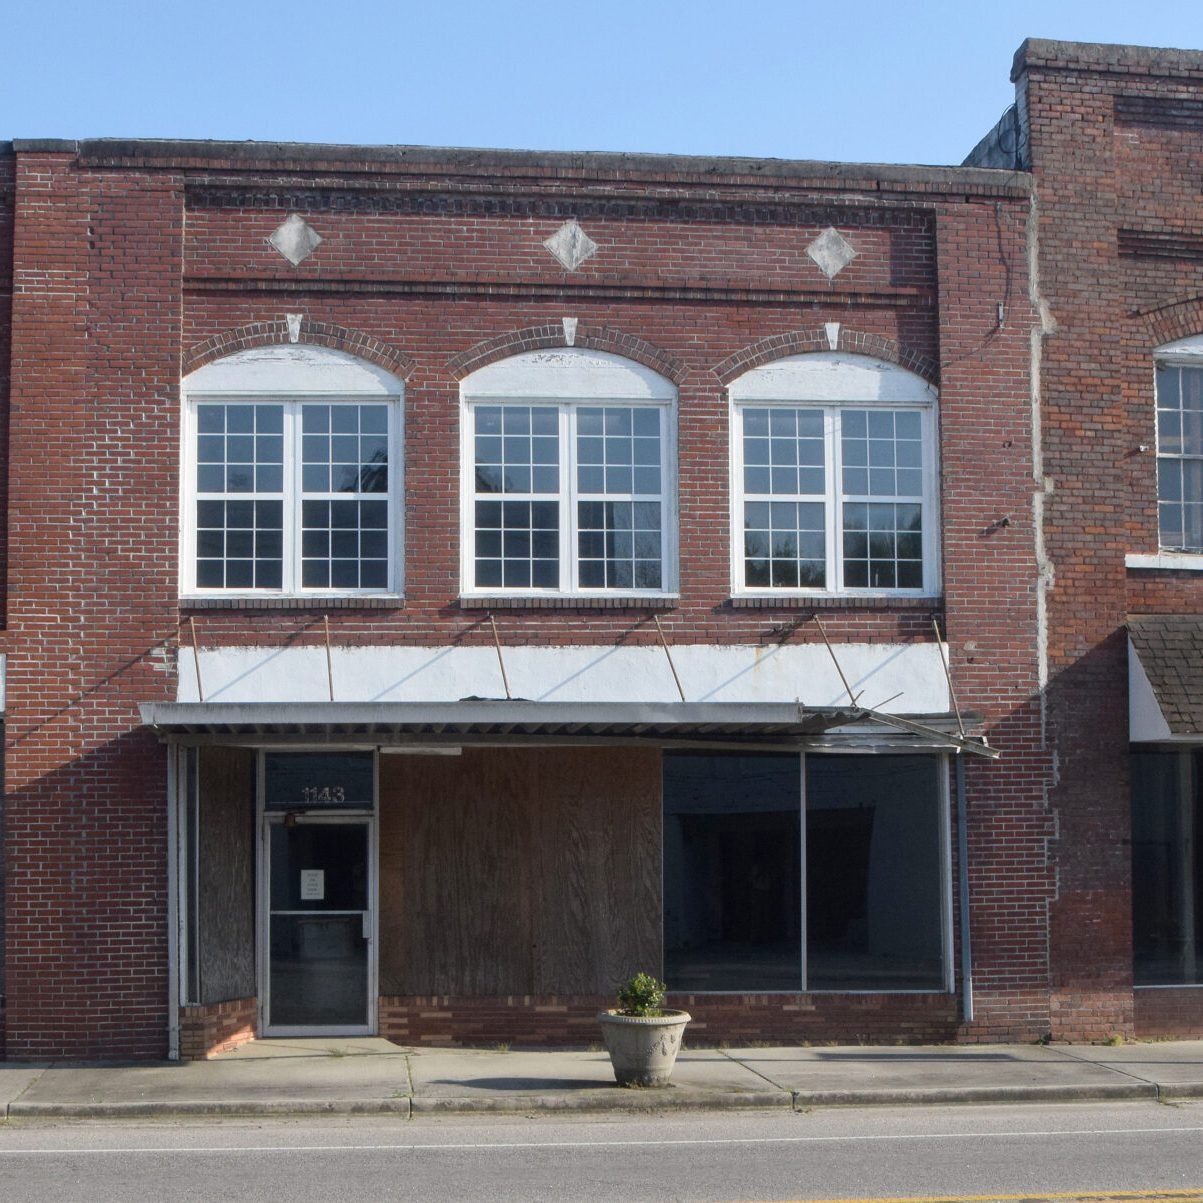 The plan is to raze Fair Bluff's historic downtown buildings to make way for a large park that could be used by river travelers. Flood waters from two hurricanes rendered these buildings structurally unsound